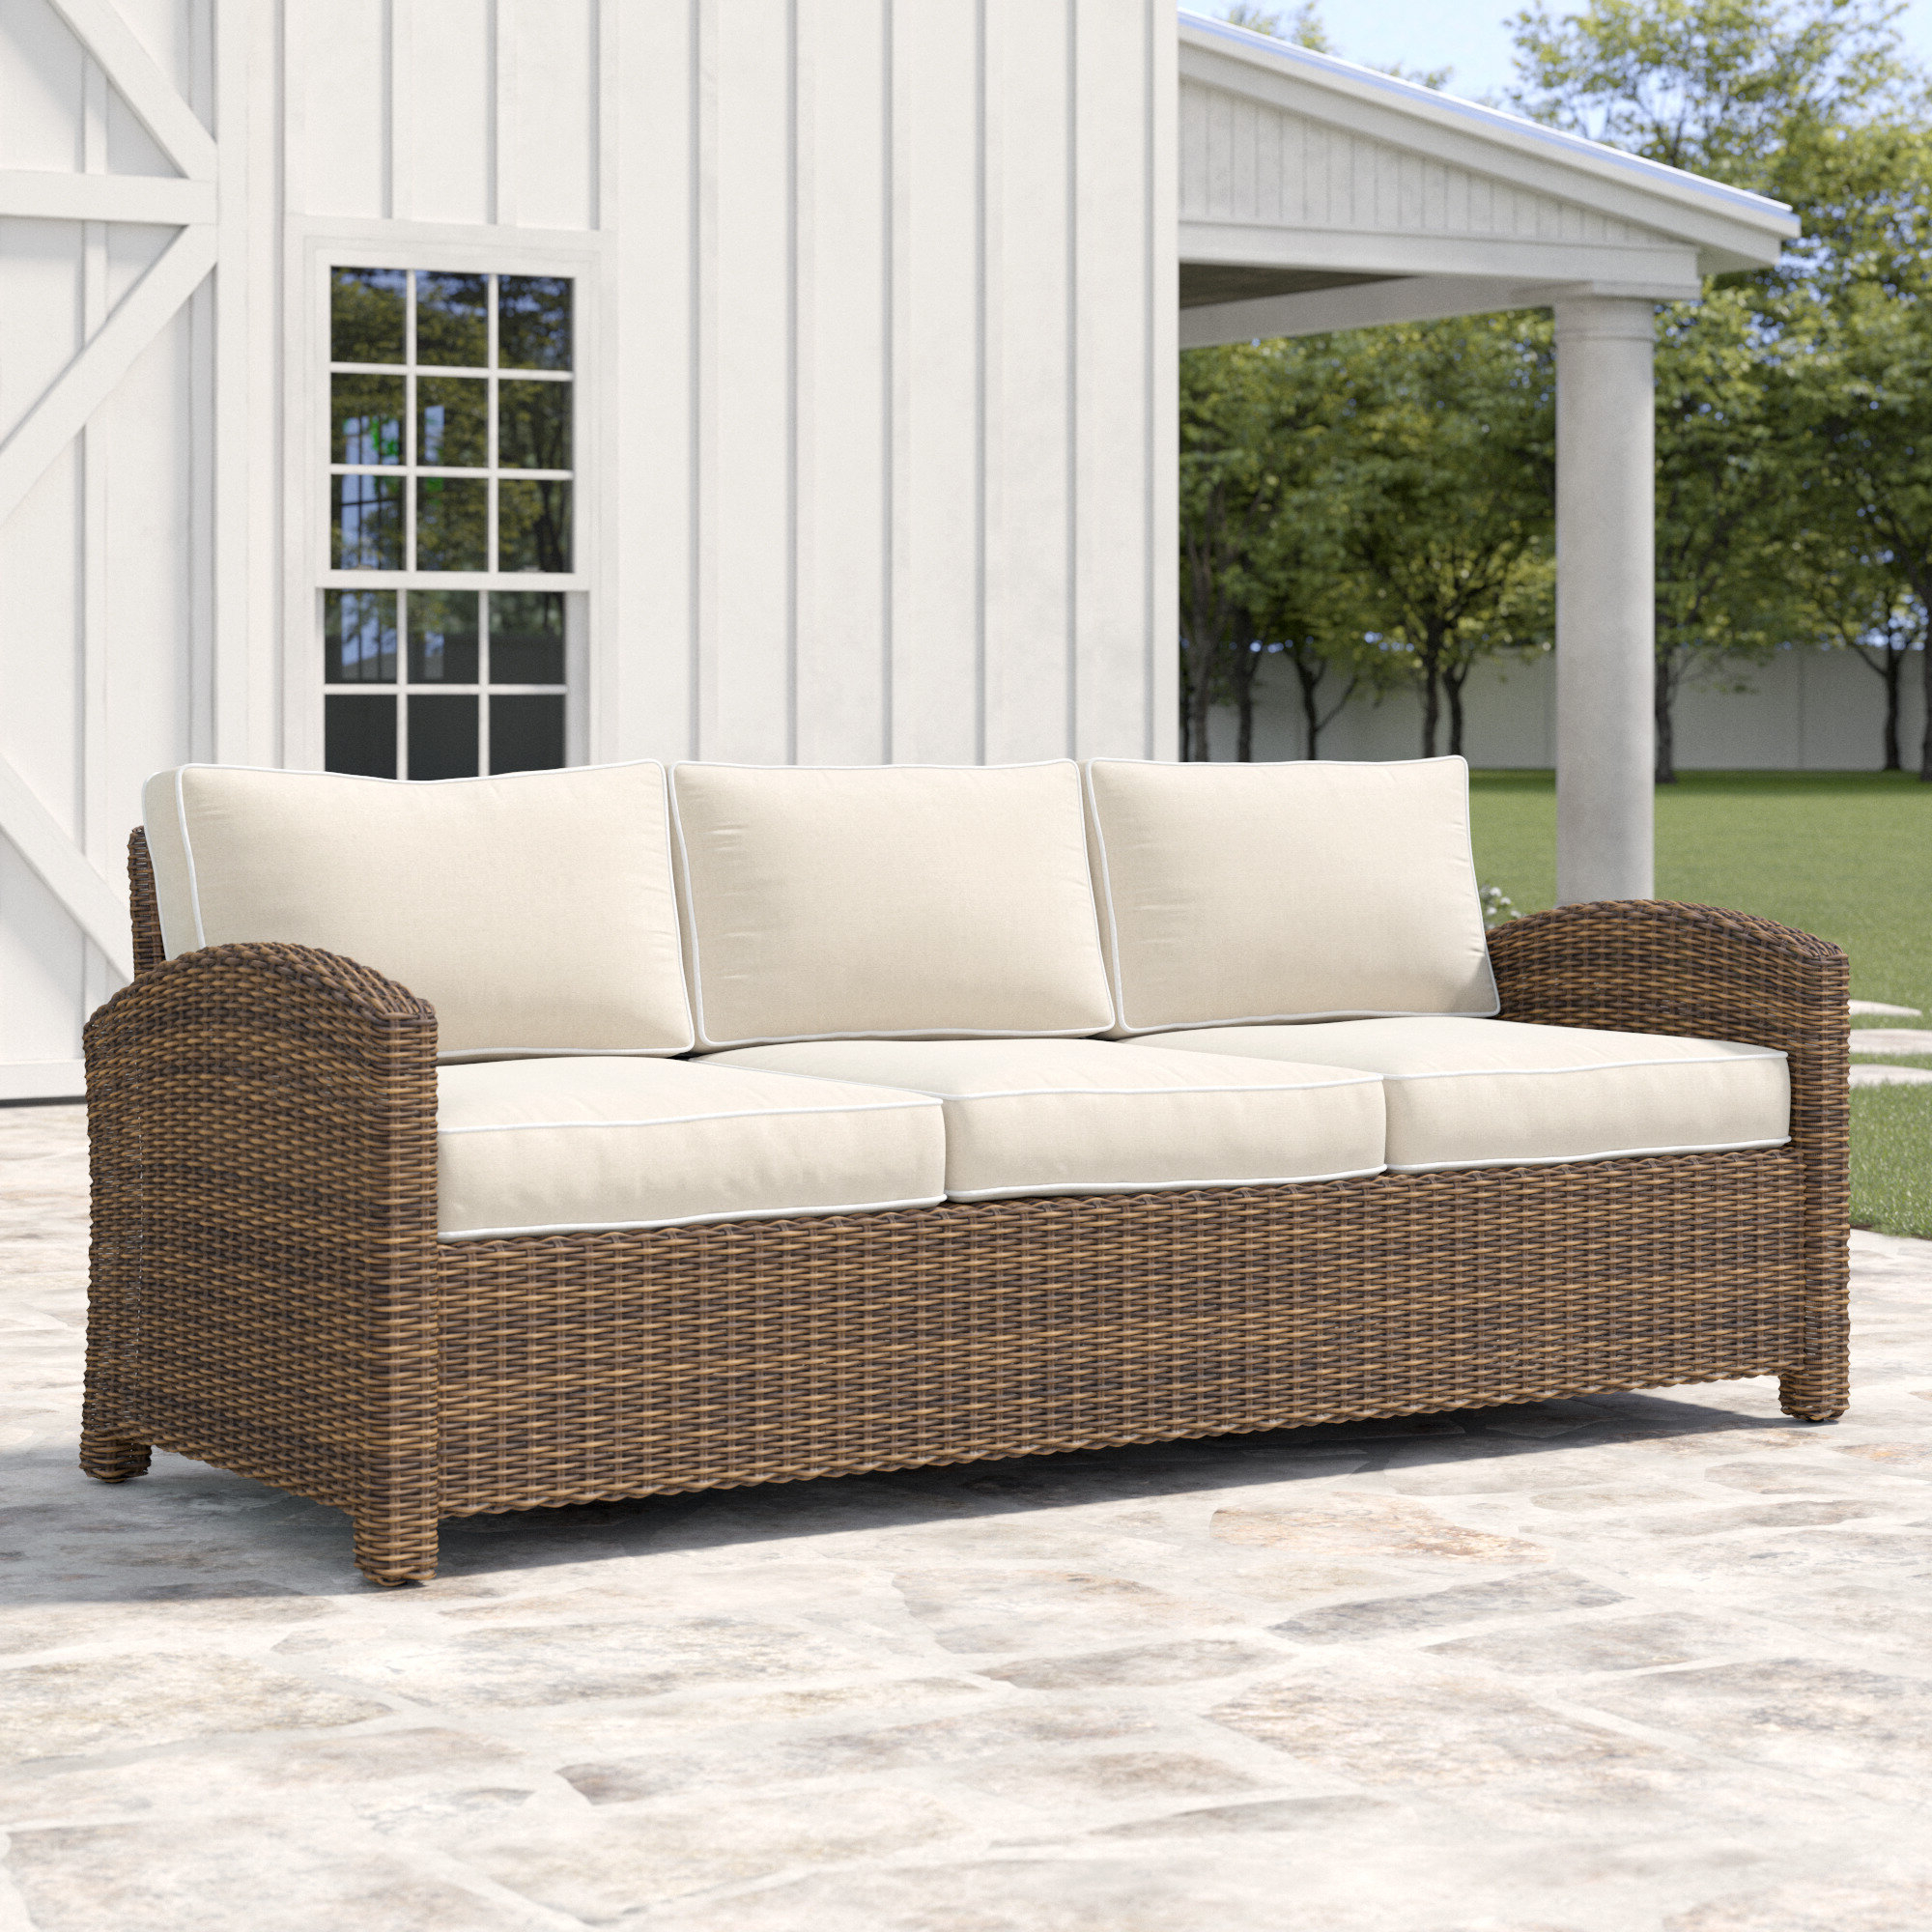 Trendy Lawson Wicker Loveseats With Cushions With Lawson Patio Sofa With Cushions (View 6 of 25)